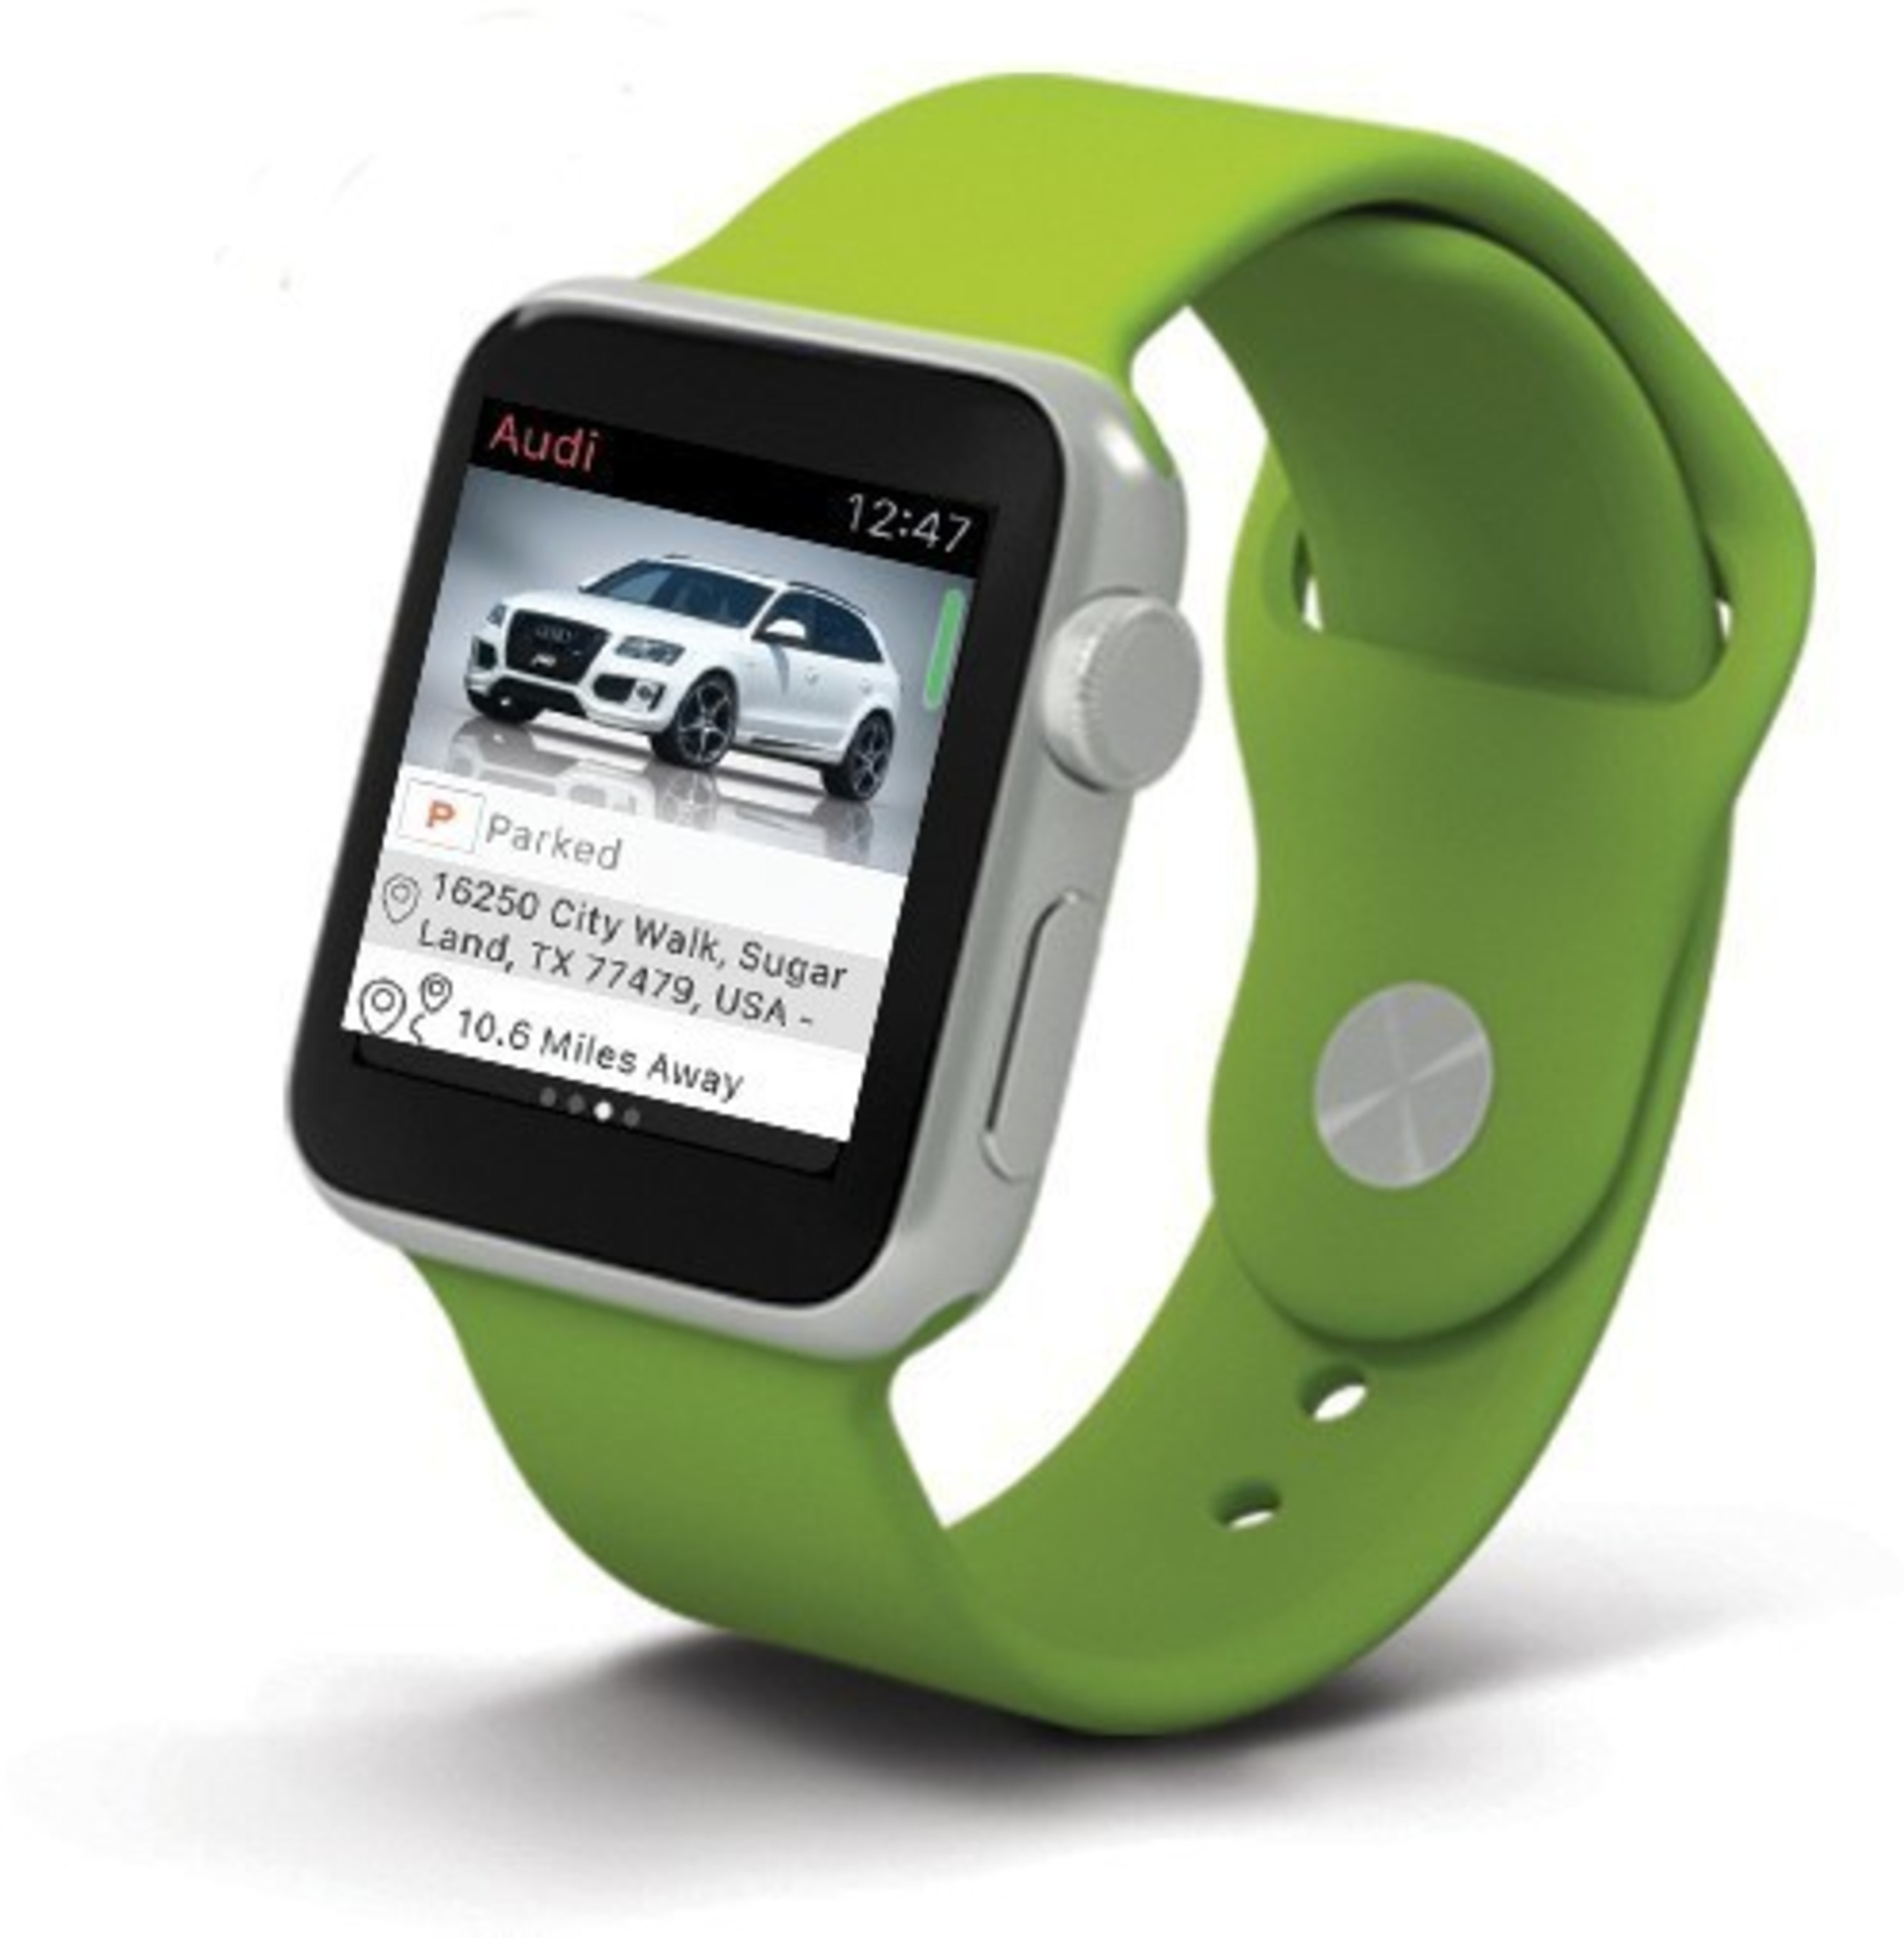 Apple Watch Car Starter and Vehicle Management App Announced by